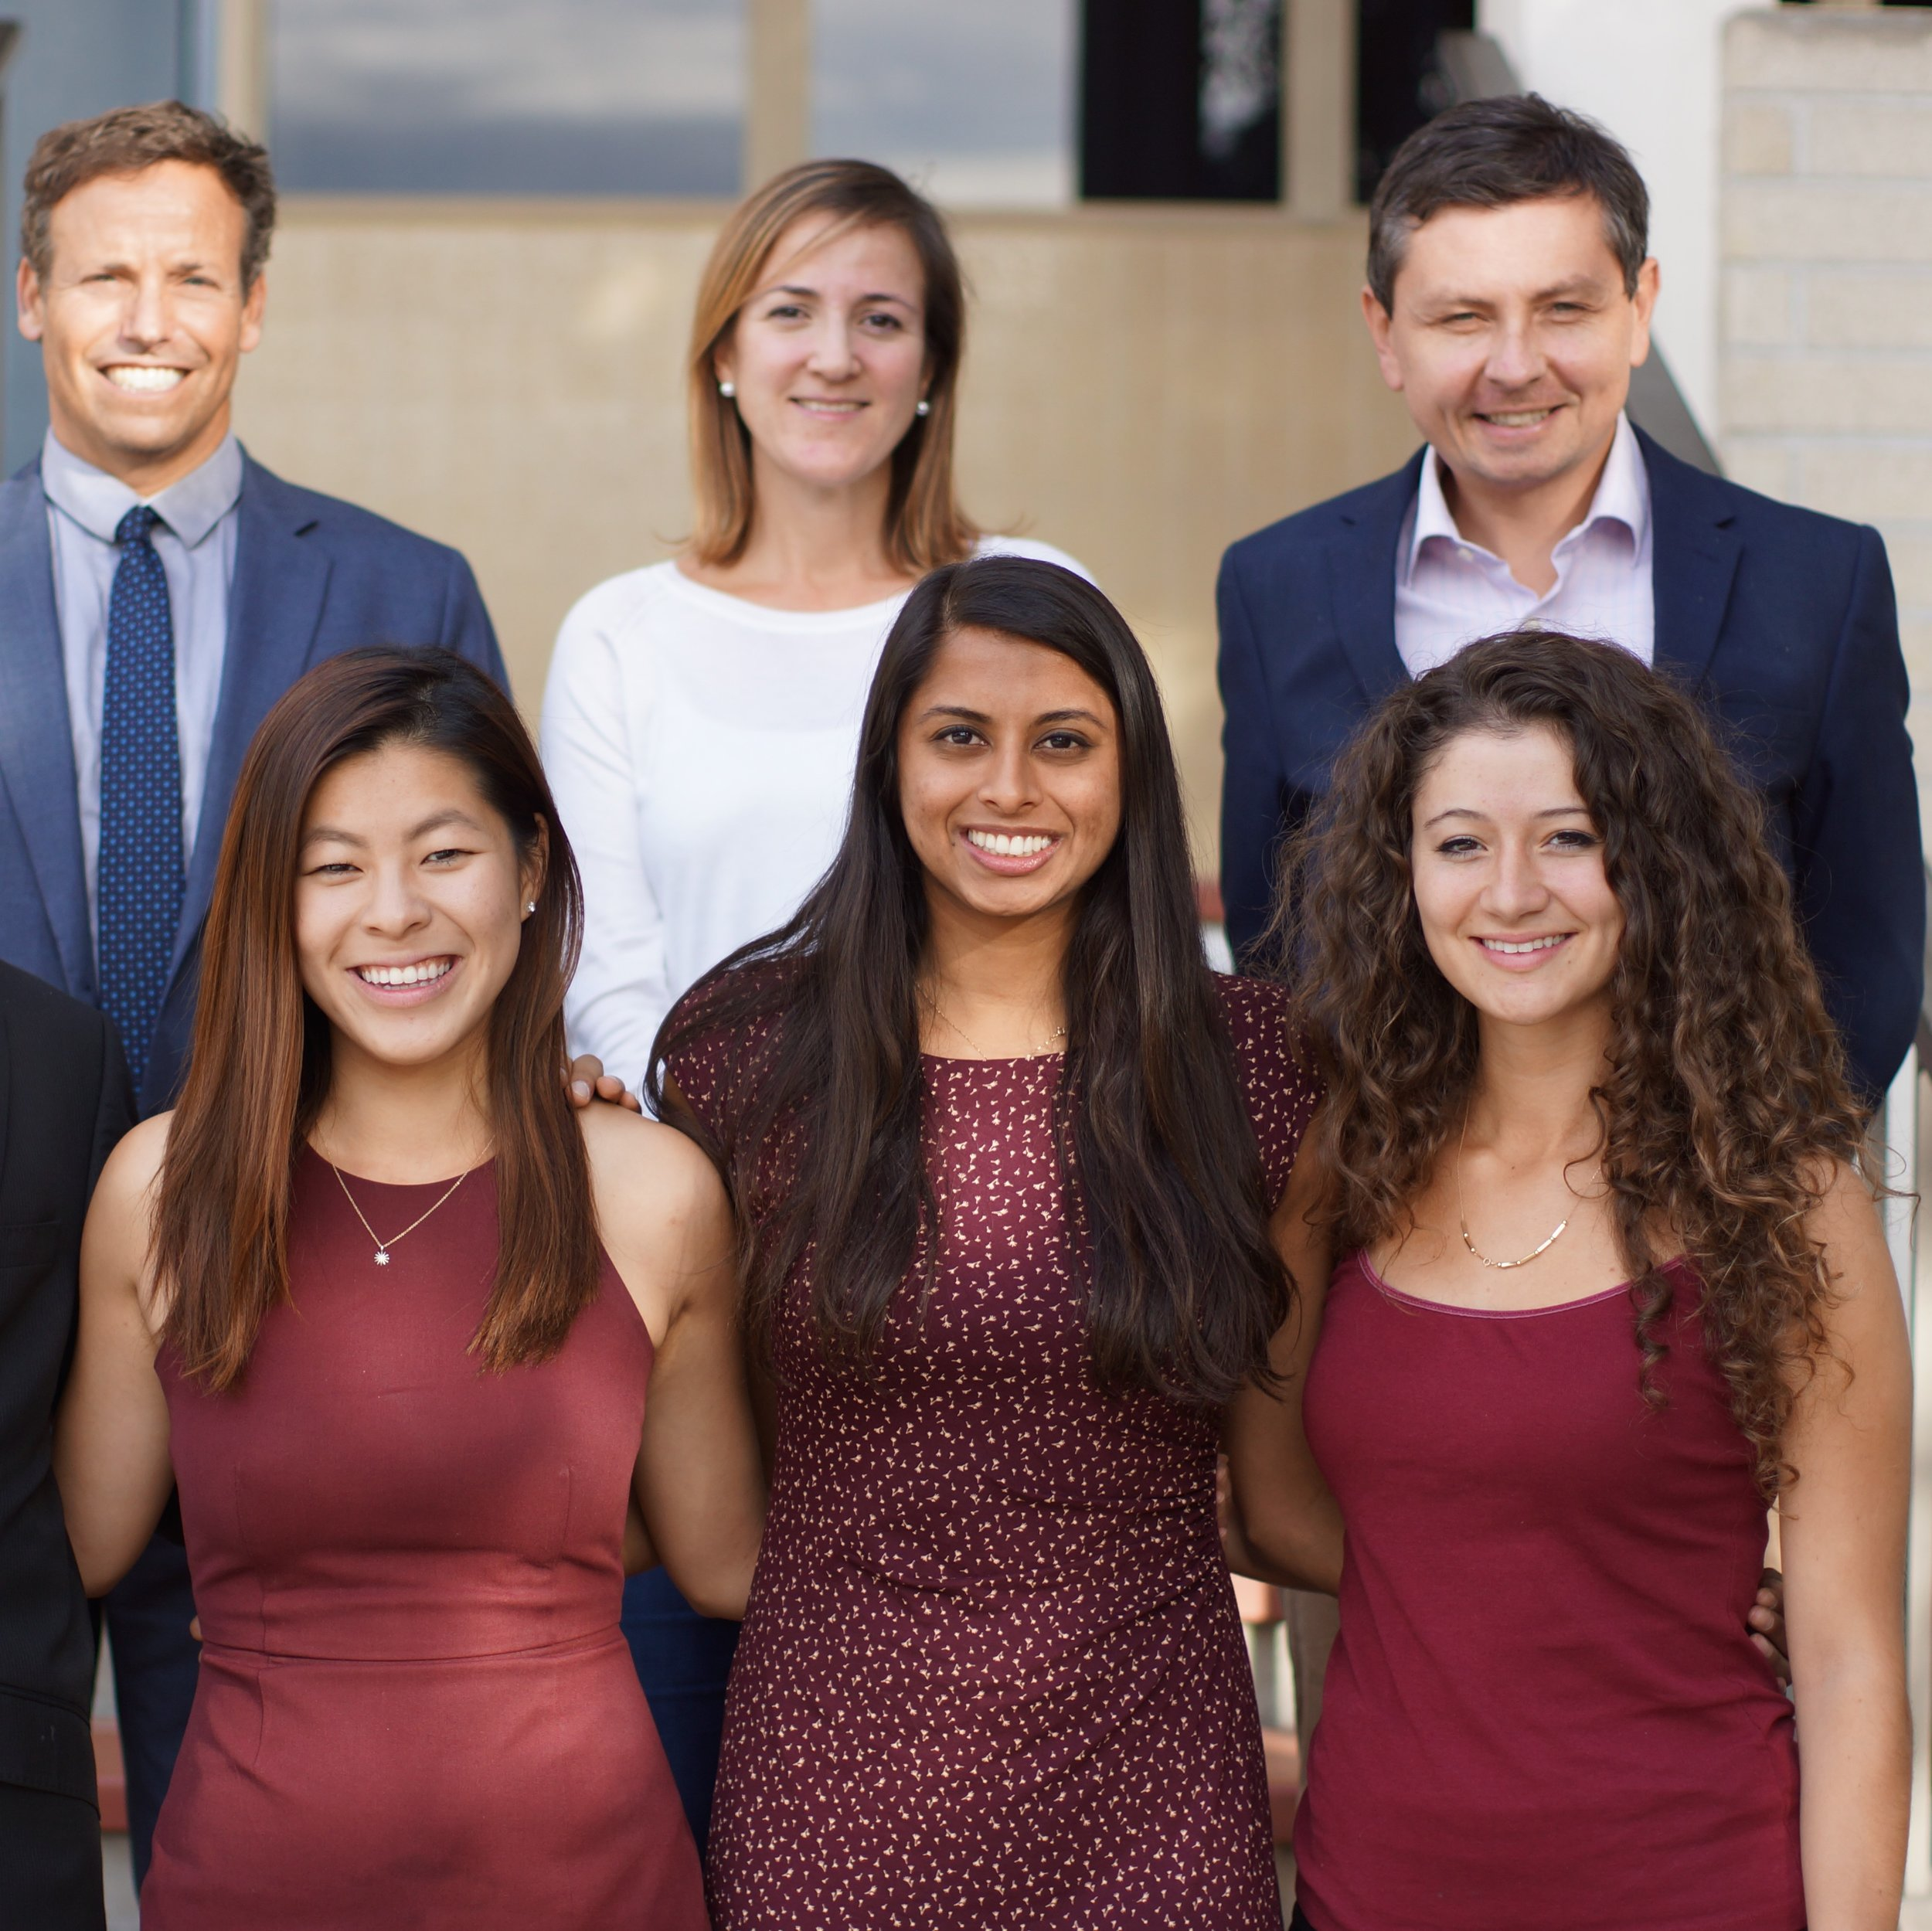 CMC Students Tackle Hult Prize Competition - Learn about CMC's awardwinning team and their experience at the Hult Prize finals.Read More →